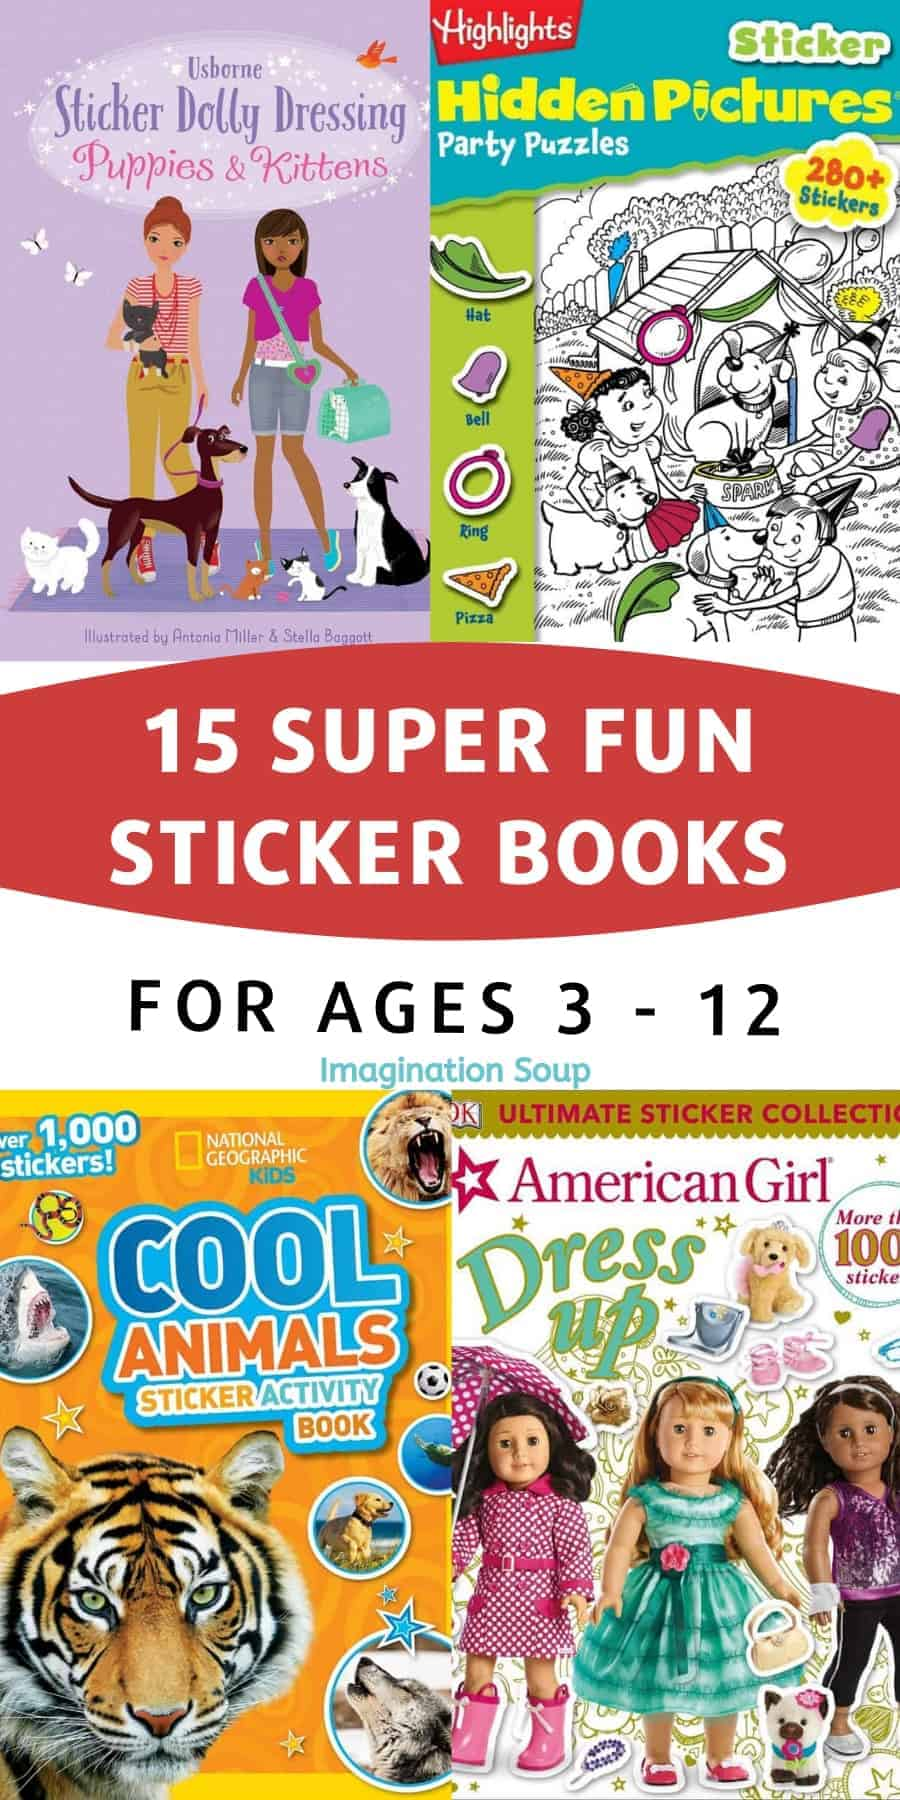 15 awesome sticker books for kids